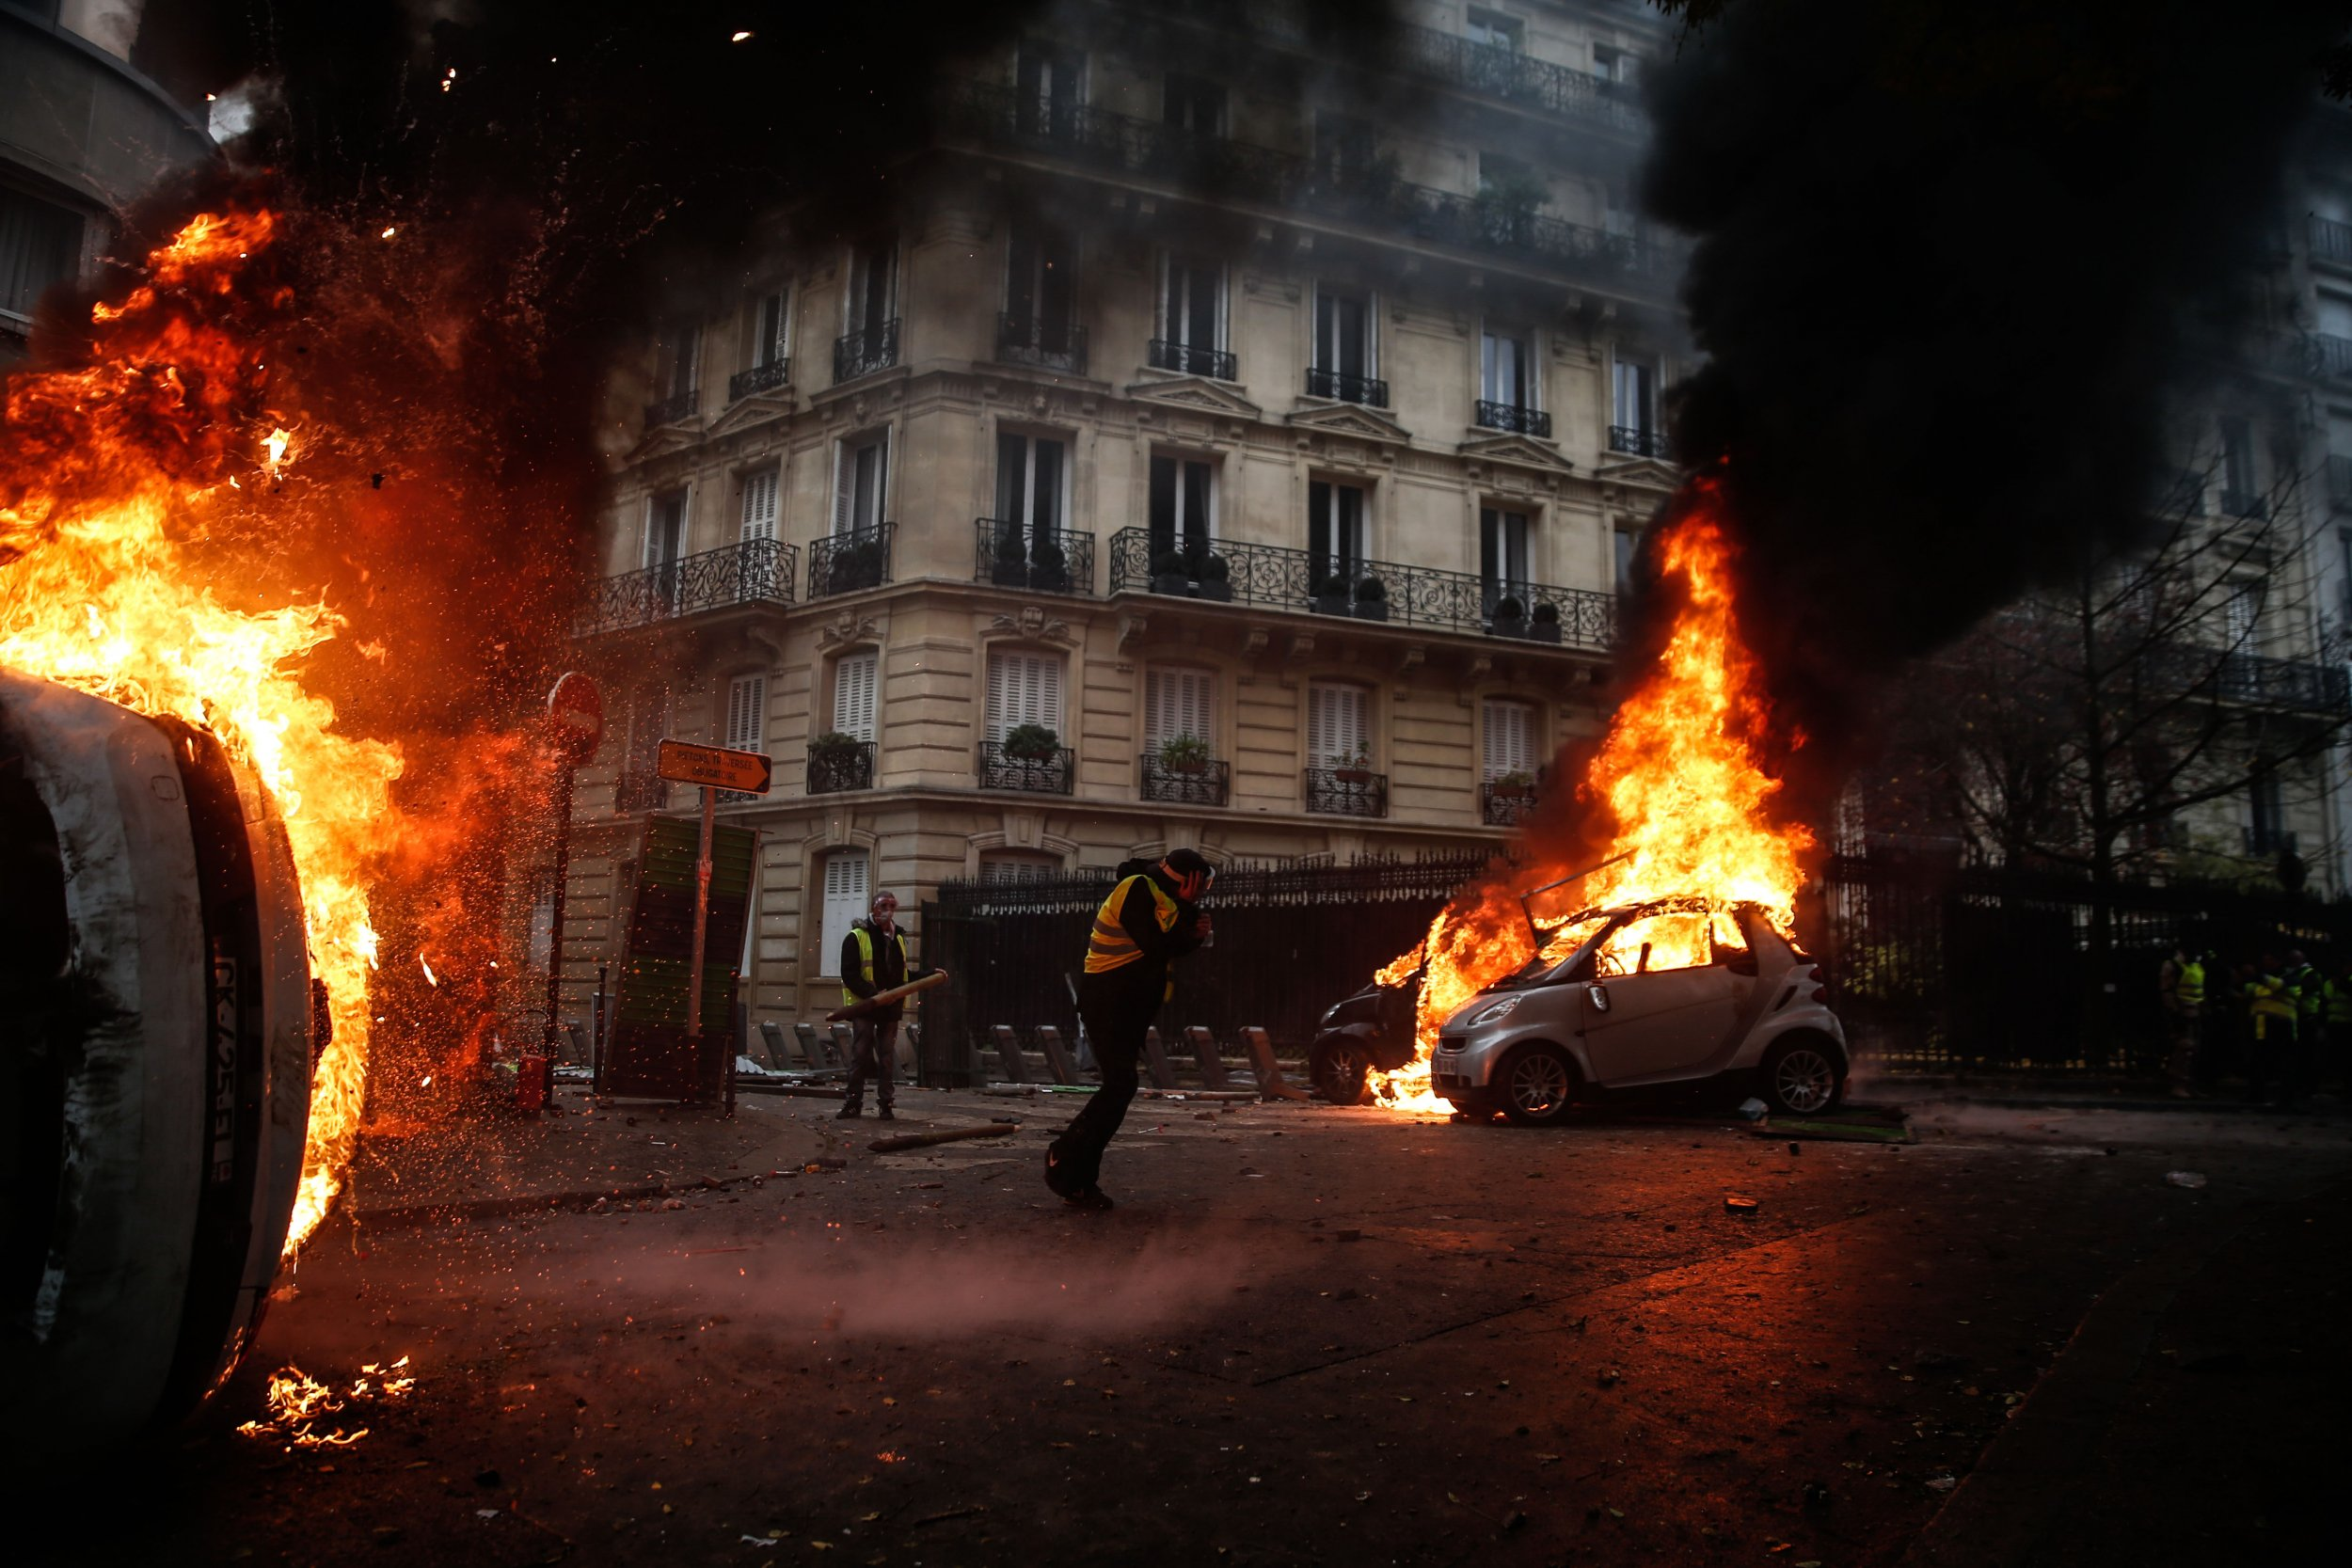 paris-riots-emmanuel-macron-yellow-jackets.jpg